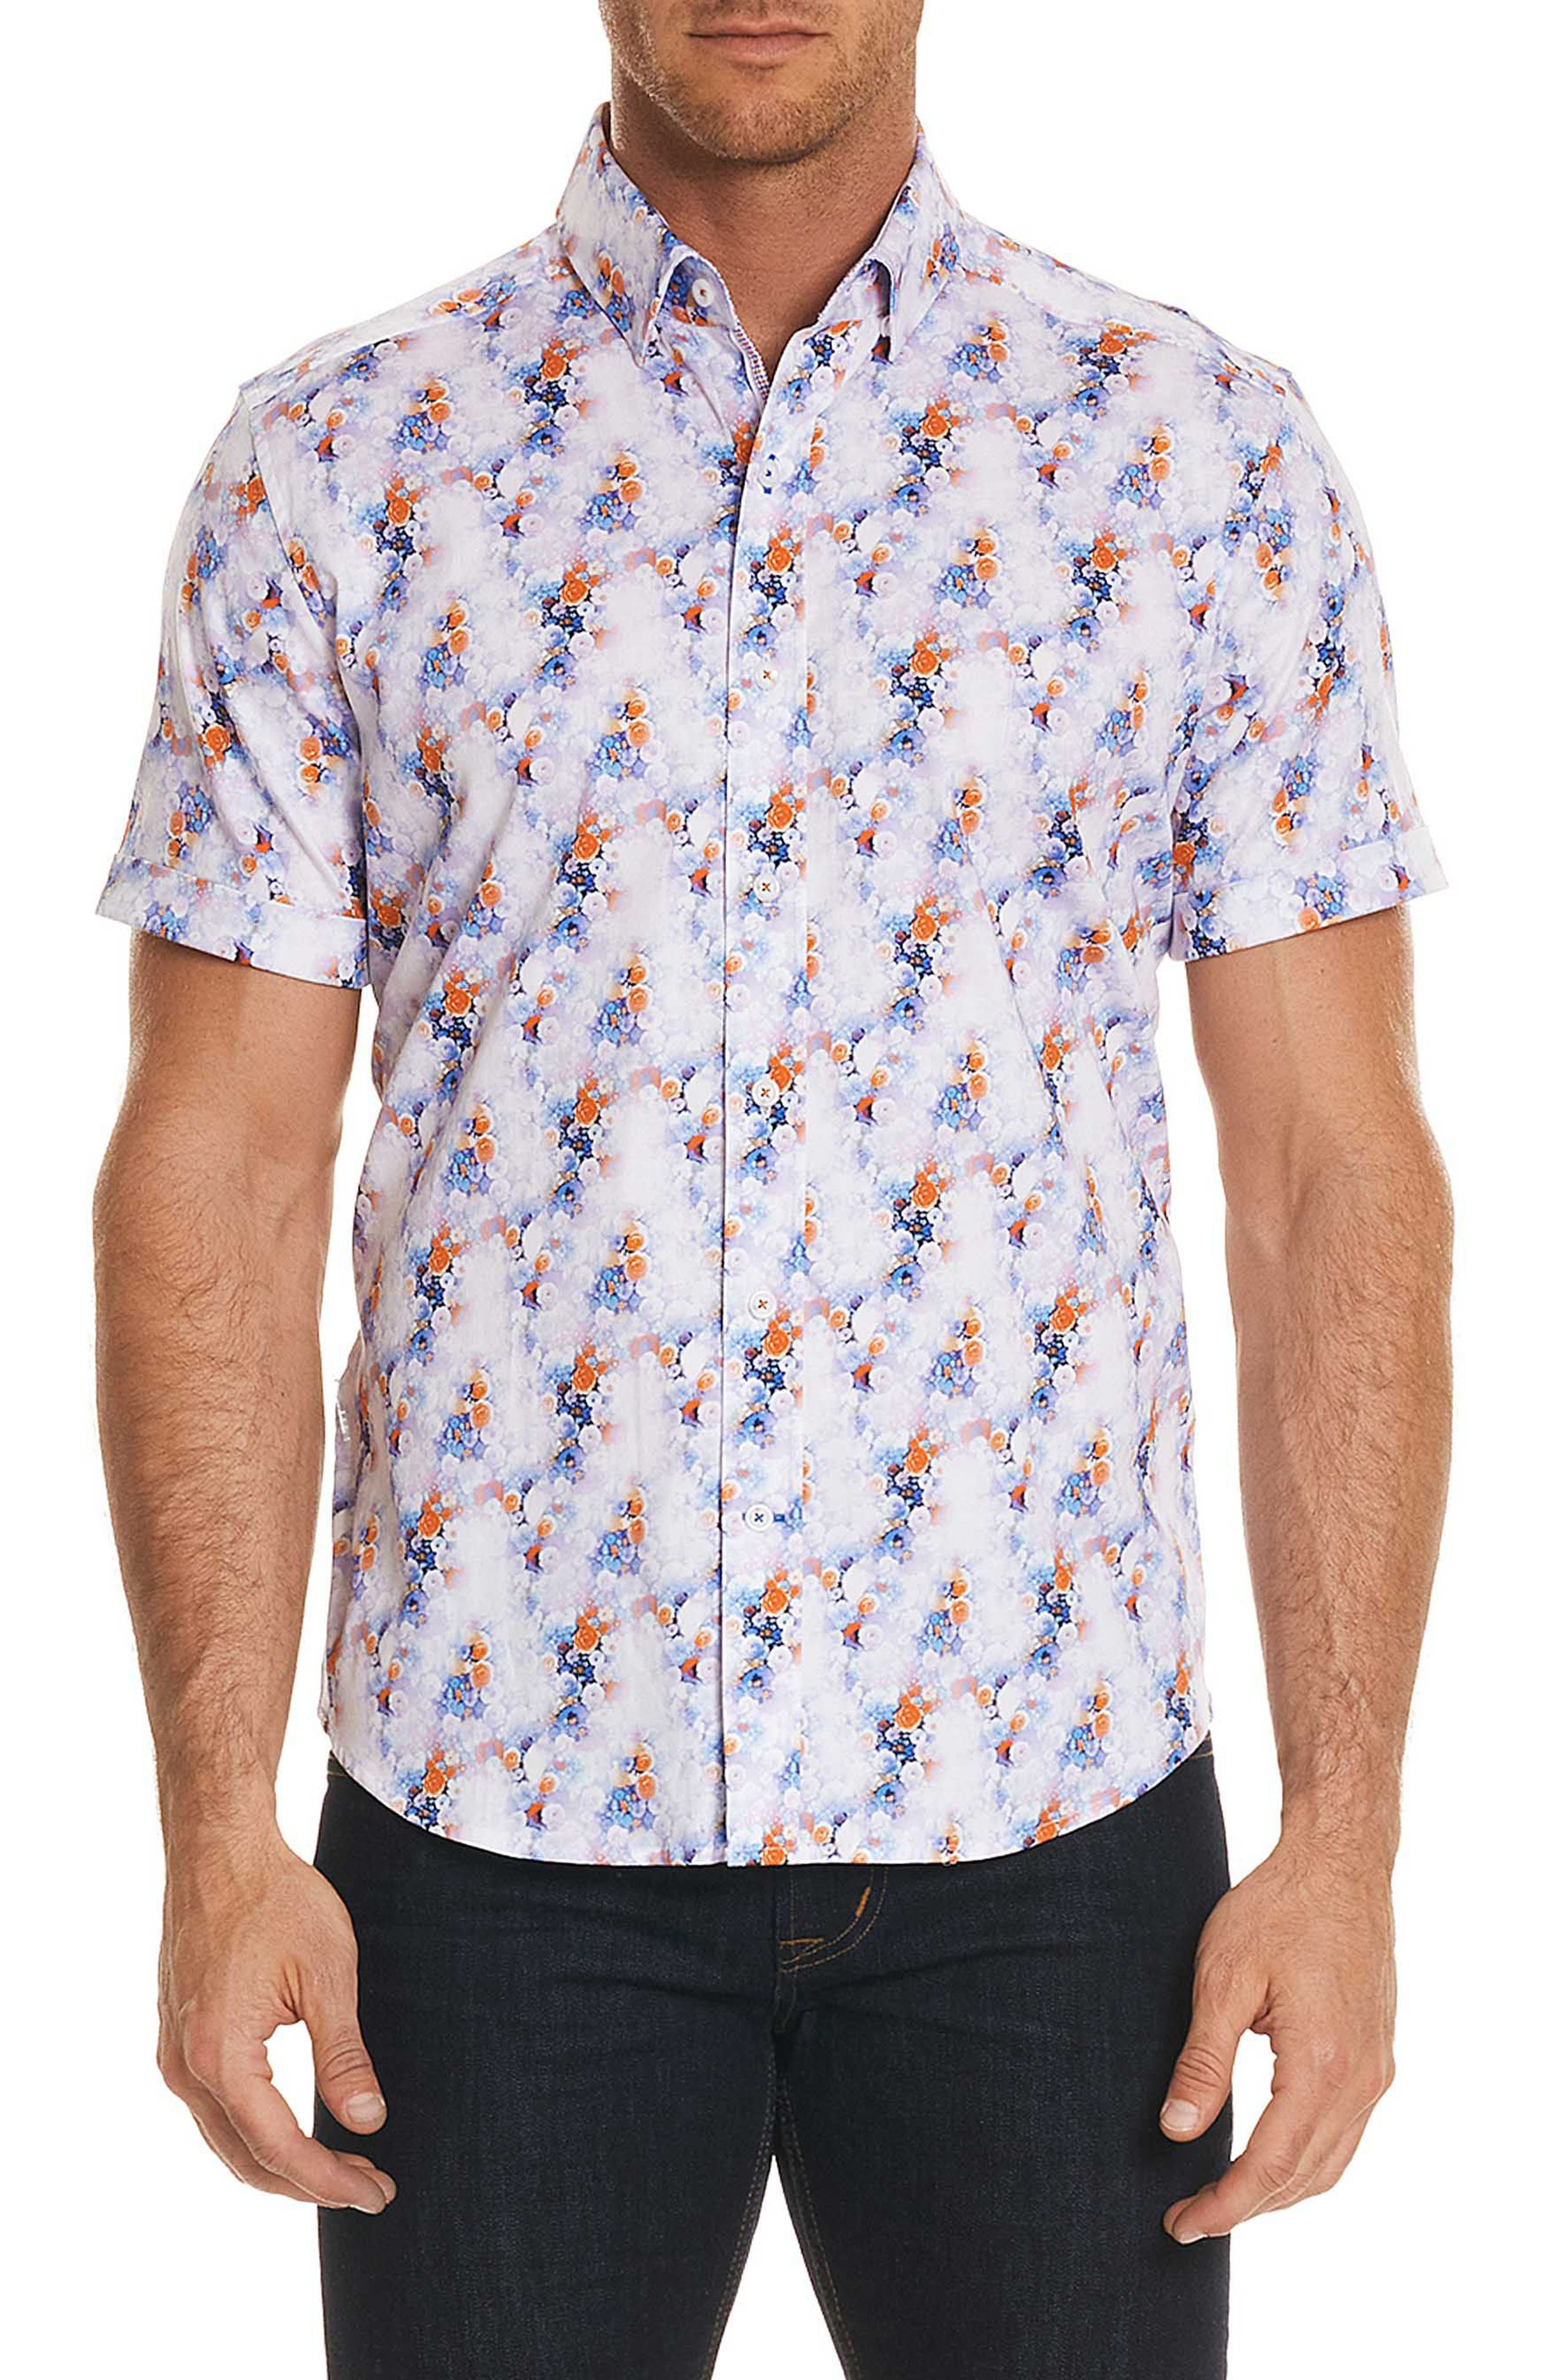 Bodie Tailored Fit Sport Shirt,                         Main,                         color, Multi